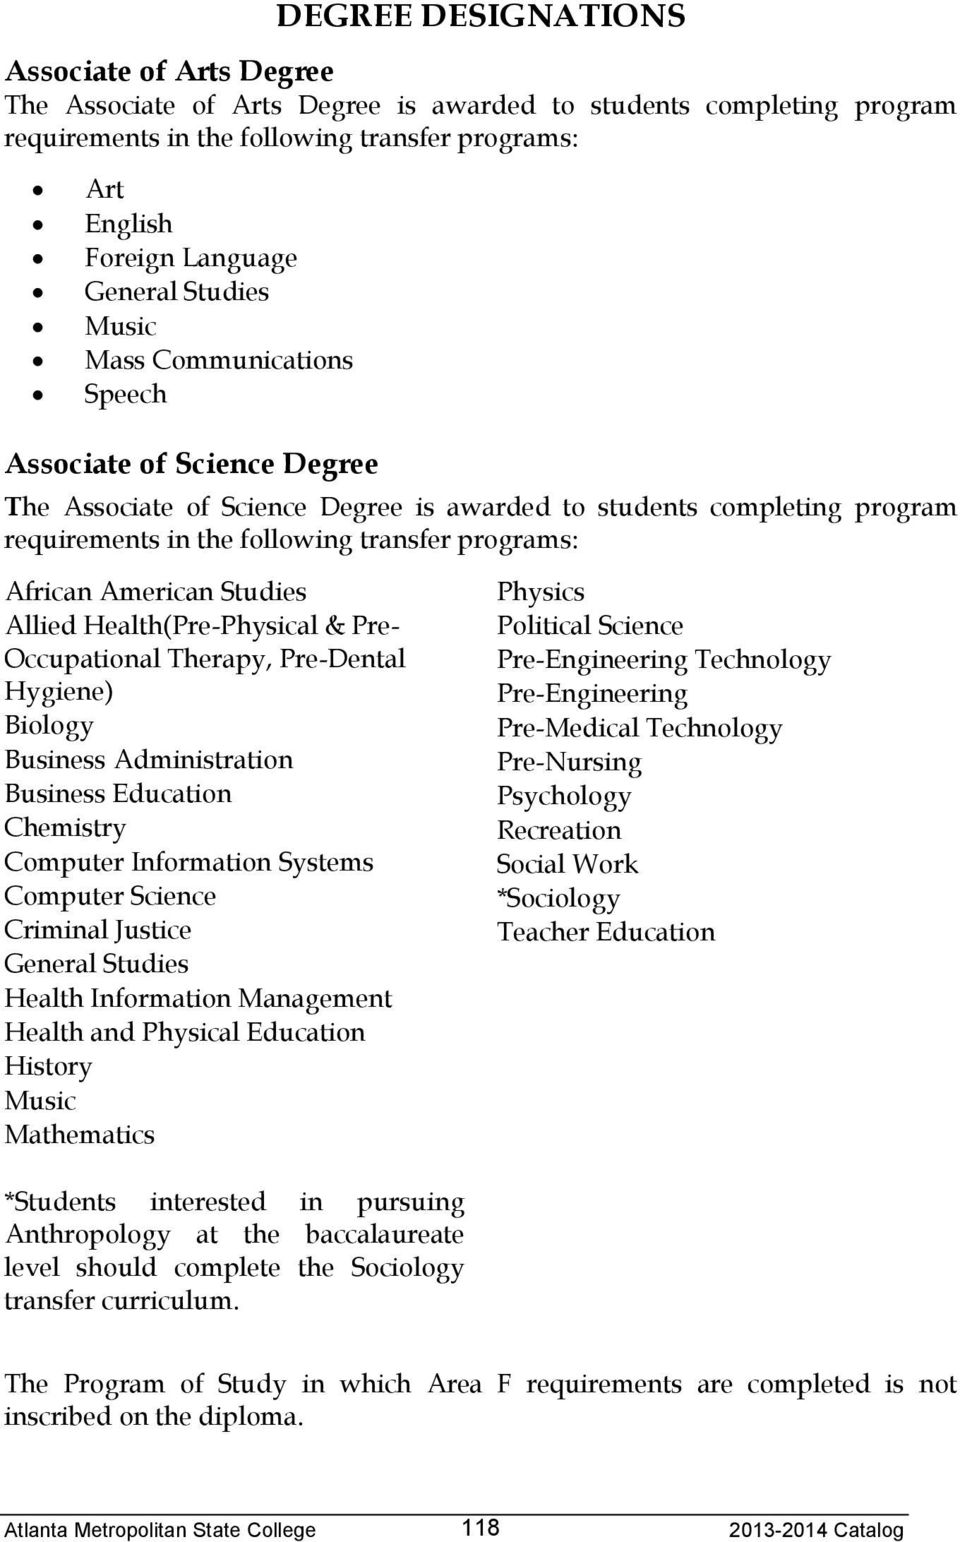 African American Studies Allied Health(Pre-Physical & Pre- Occupational Therapy, Pre-Dental Hygiene) Biology Business Administration Business Education Chemistry Computer Information Systems Computer